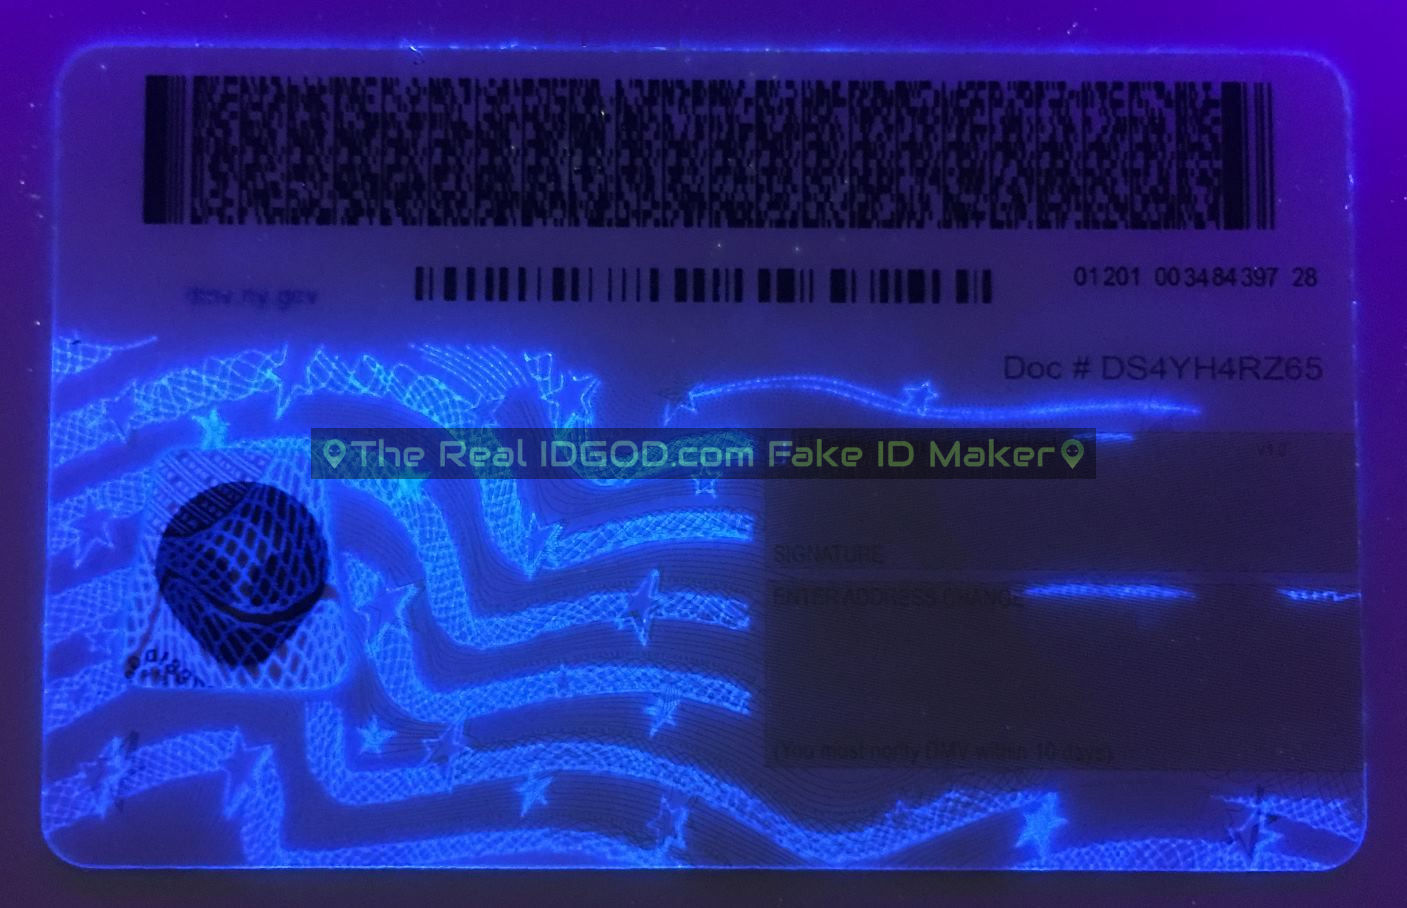 New York fake id card ultraviolet ink design under blacklight